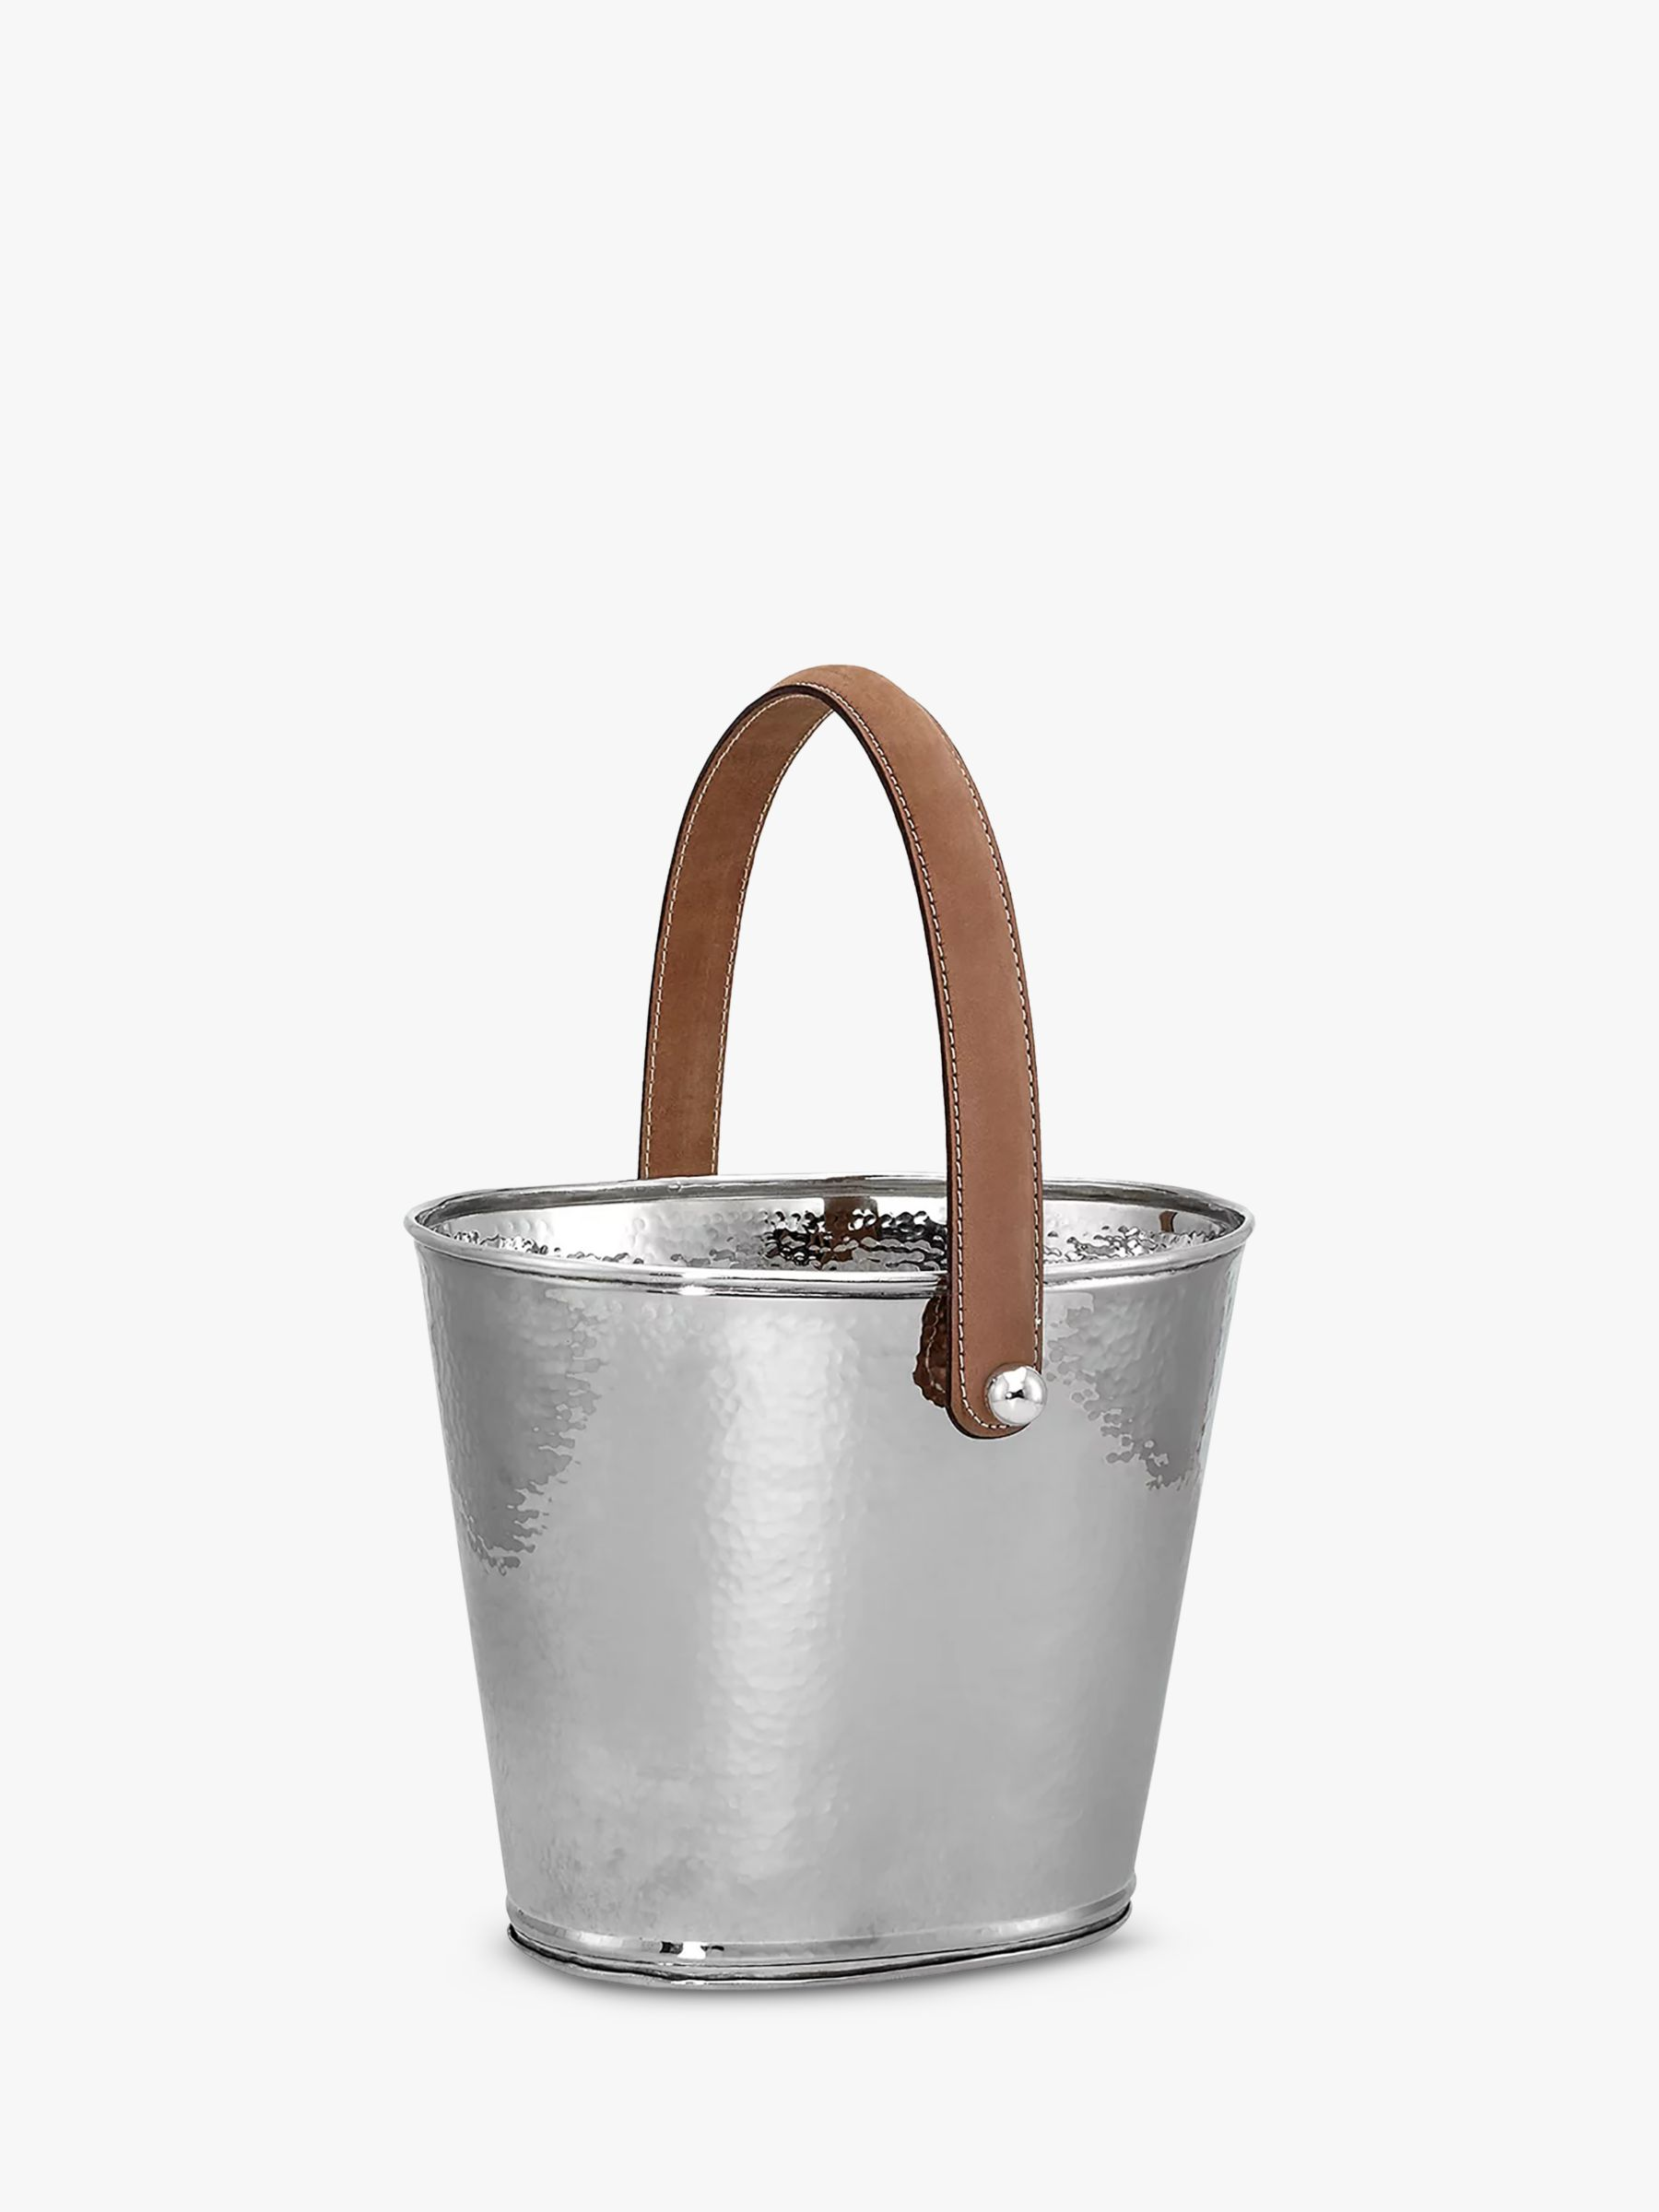 Culinary Concepts Culinary Concepts Leather Handle Wine Cooler